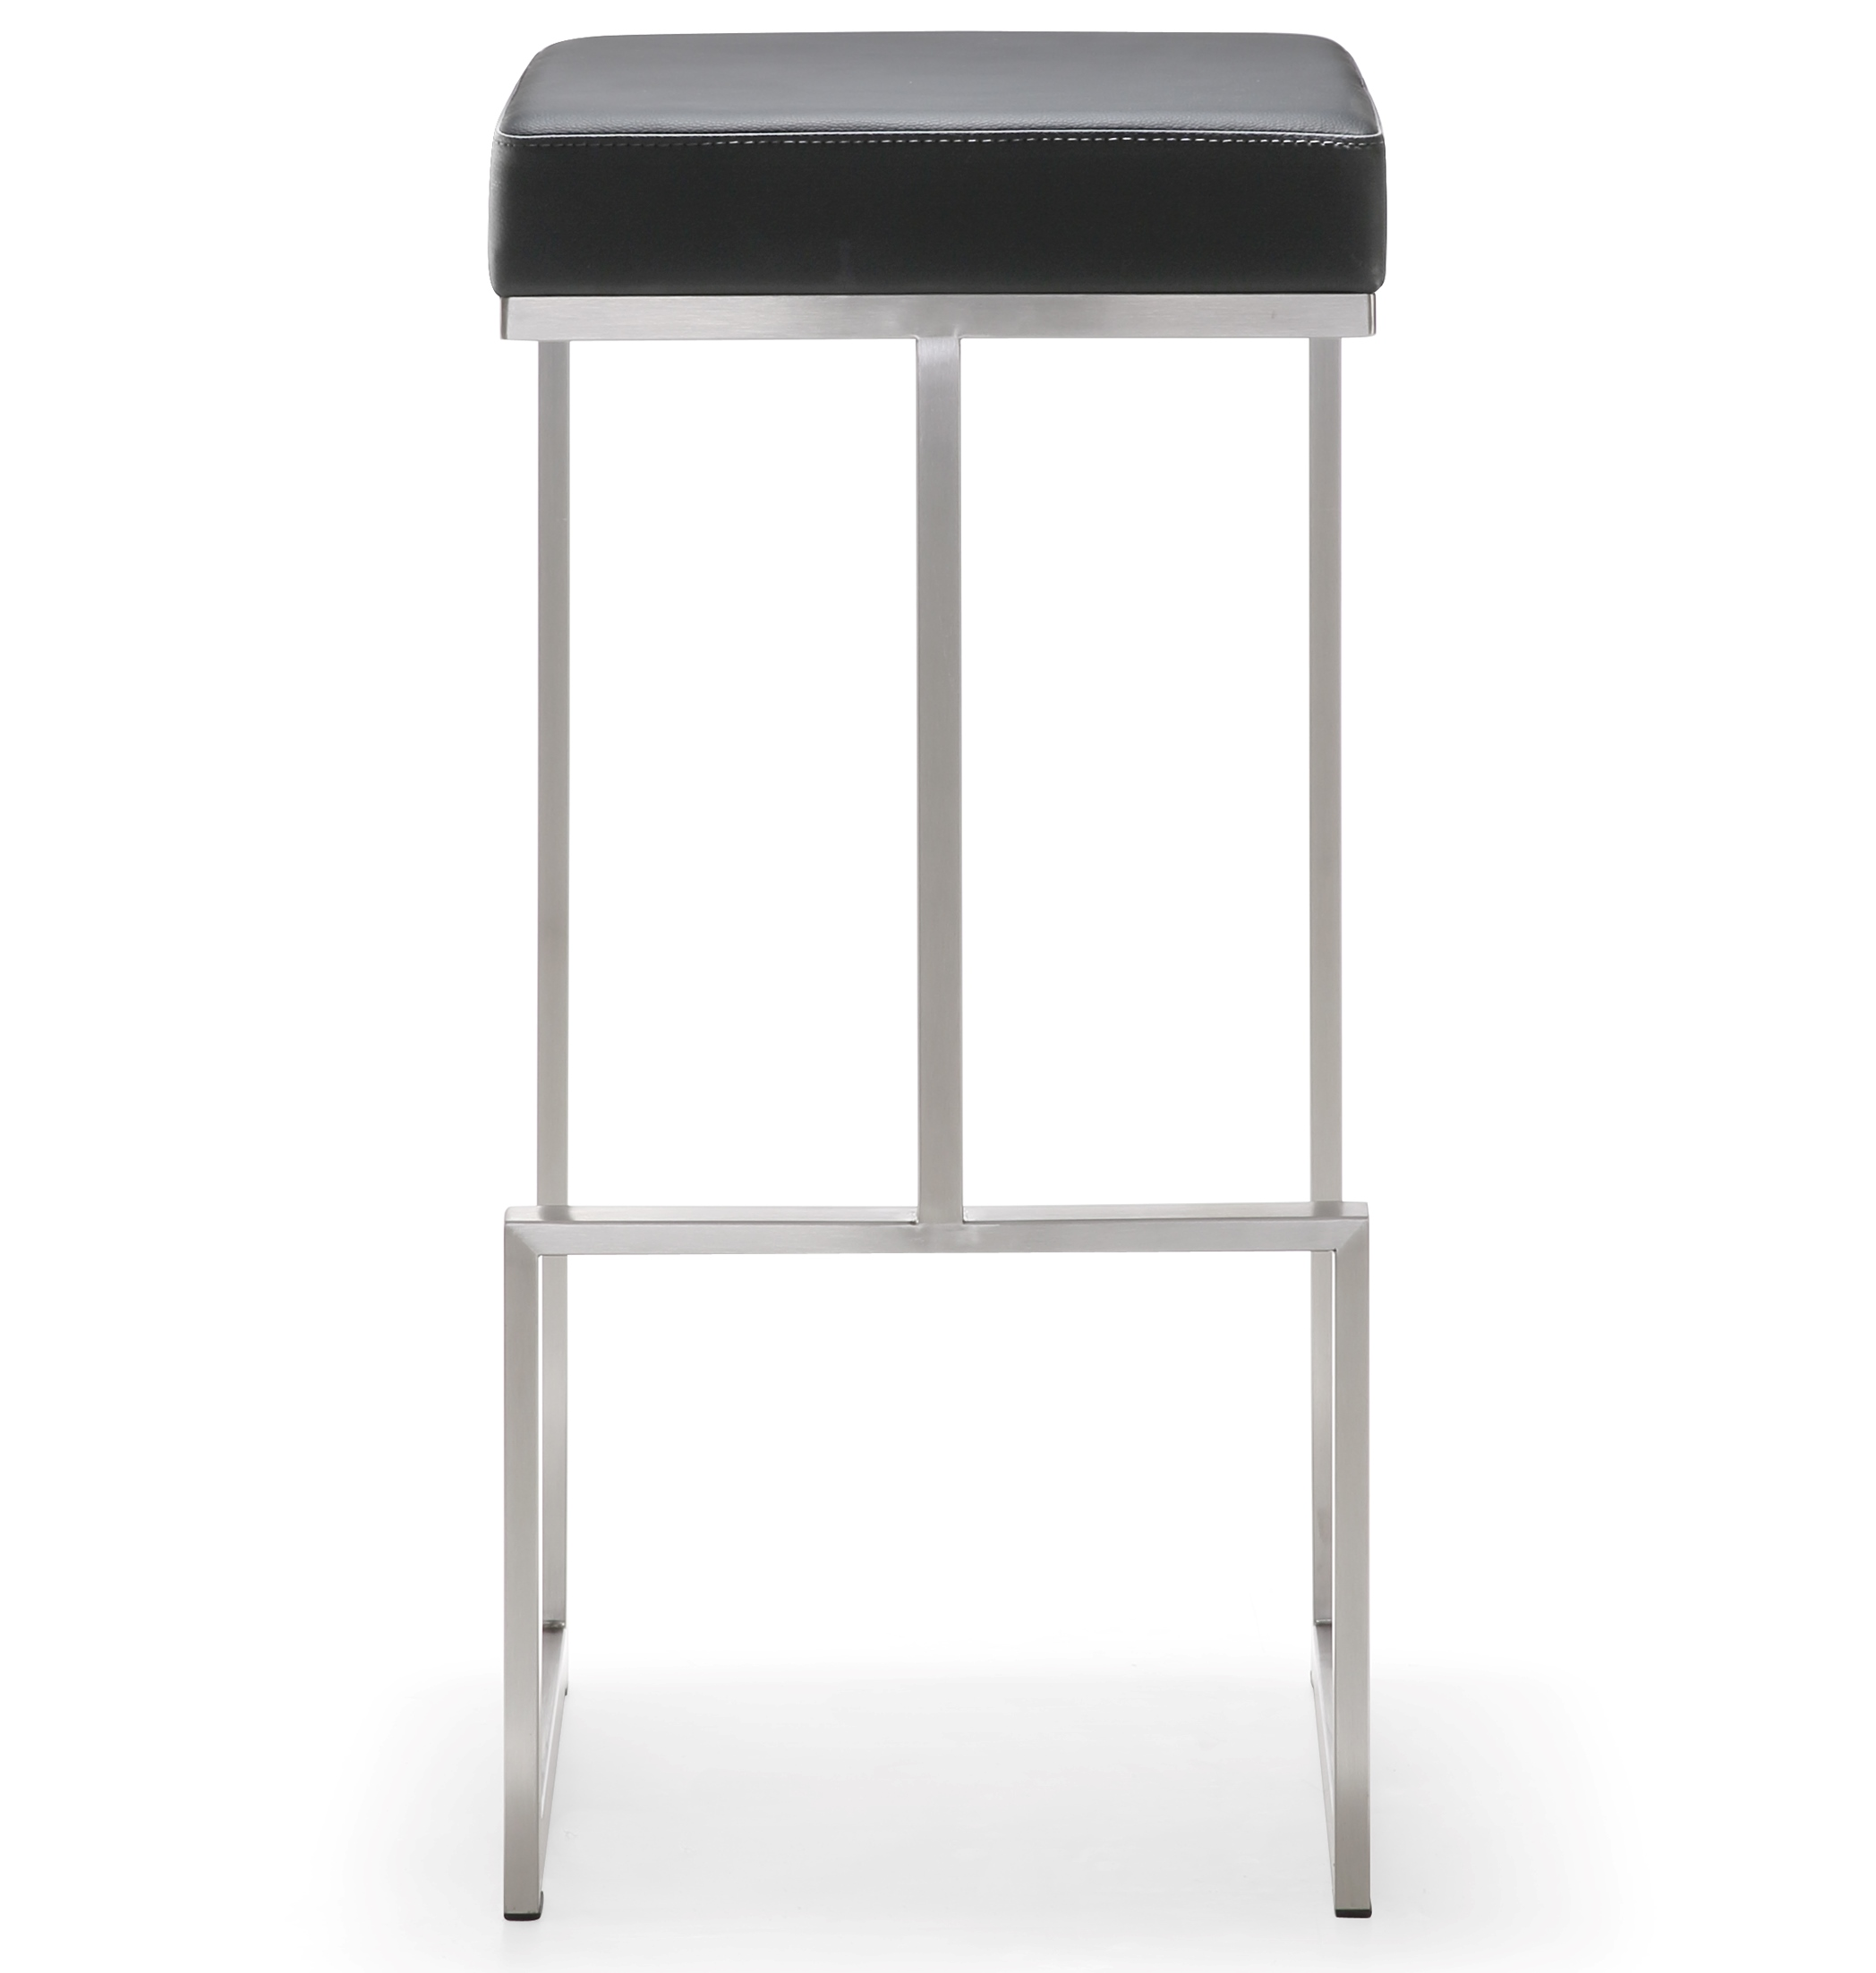 Wondrous Ferrara Black Stainless Steel Barstool Set Of 2 Ncnpc Chair Design For Home Ncnpcorg